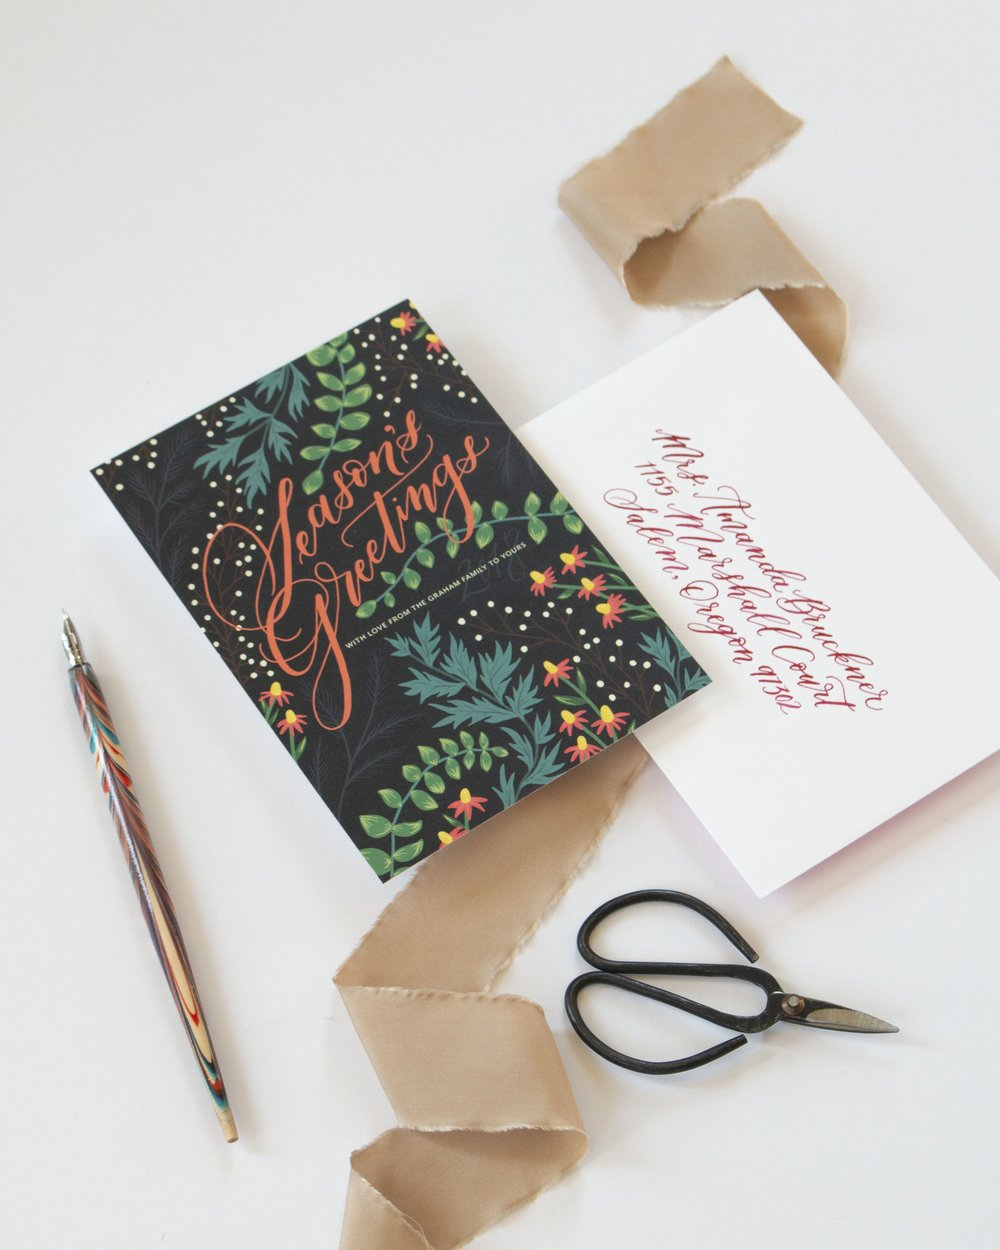 Season's Greetings Illustrated Calligraphy Christmas Card by Caitlin O'Bryant Design